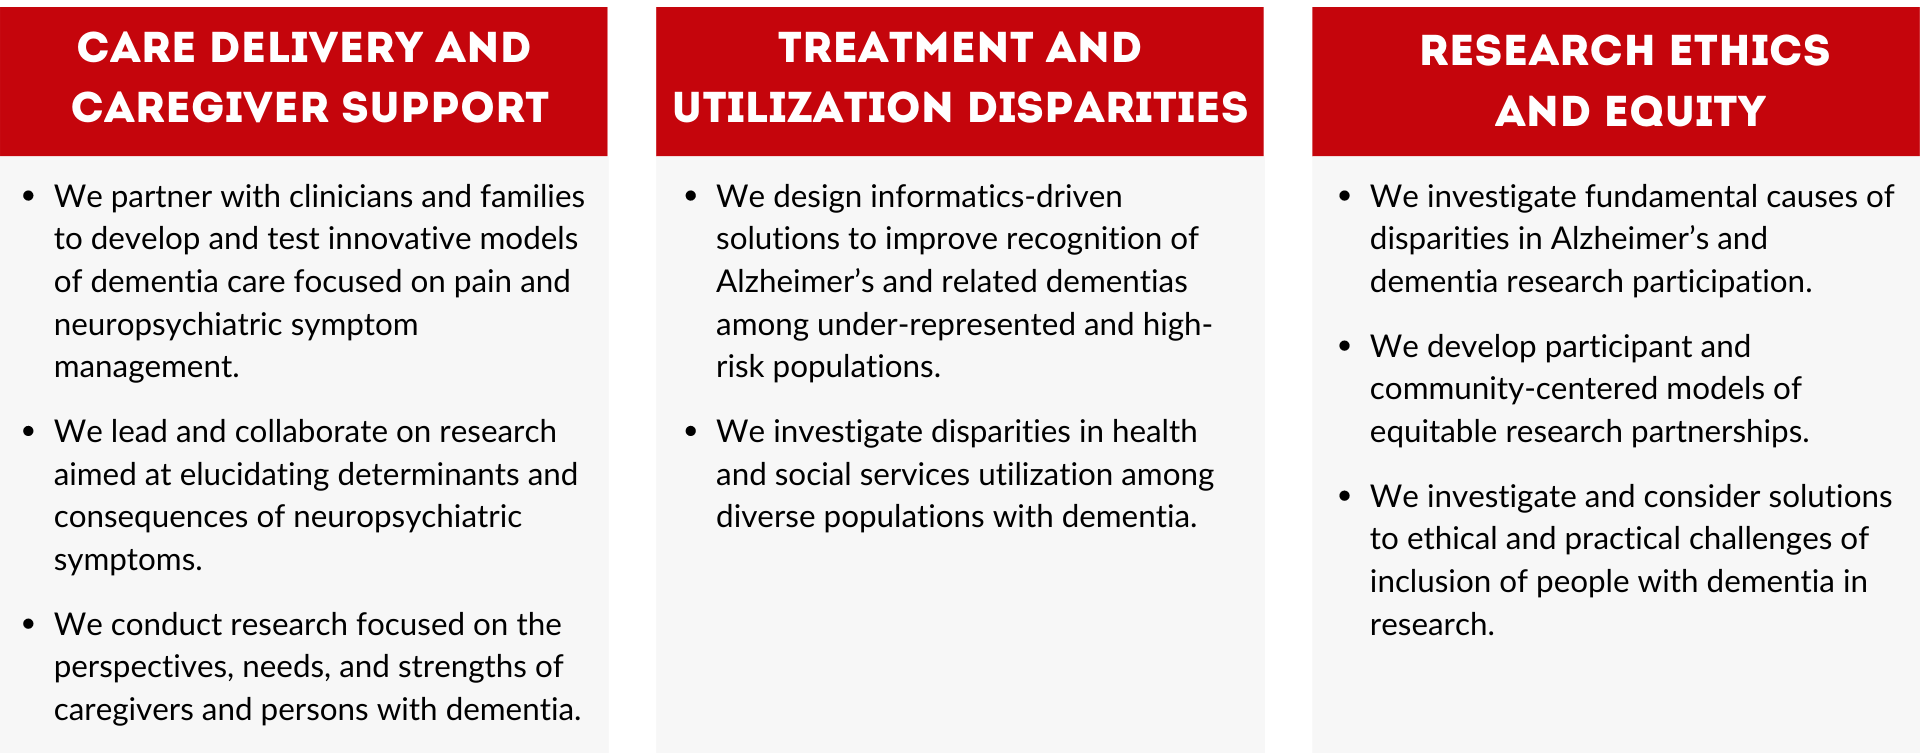 """1. Care Delivery and Caregiver Support We partner with clinicians and families to test innovative models of dementia-specific care delivery targeting neuropsychiatric symptom management. We lead and collaborate on research aimed at elucidating determinants and consequences of neuropsychiatric symptoms and clarifying mechanisms of action for non-pharmacologic interventions. We conduct research focused on the perspectives, needs, and strengths of family and friend caregivers for persons with dementia, and research that explicitly seeks and amplifies the perspectives of persons living with the disease. 2. Treatment and Utilization Disparities We investigate disparities in health and social services utilization among diverse populations with dementia, focusing on acute and post-acute illness care. We design informatics-driven solutions to improve recognition of Alzheimer's and related dementias among under-represented and high-risk populations. 3. Research Ethics and Equity We investigate fundamental mechanisms and determinants of disparities in Alzheimer's disease research participation in clinical and longitudinal cognitive aging research. We develop participant and community-centered models of equitable research partnerships to advance the field of applied recruitment science with the goal of accelerating progress toward more inclusive Alzheimer's disease research. We investigate and consider solutions to ethical and practical challenges of inclusion of people with cognitive impairment in research."""""""